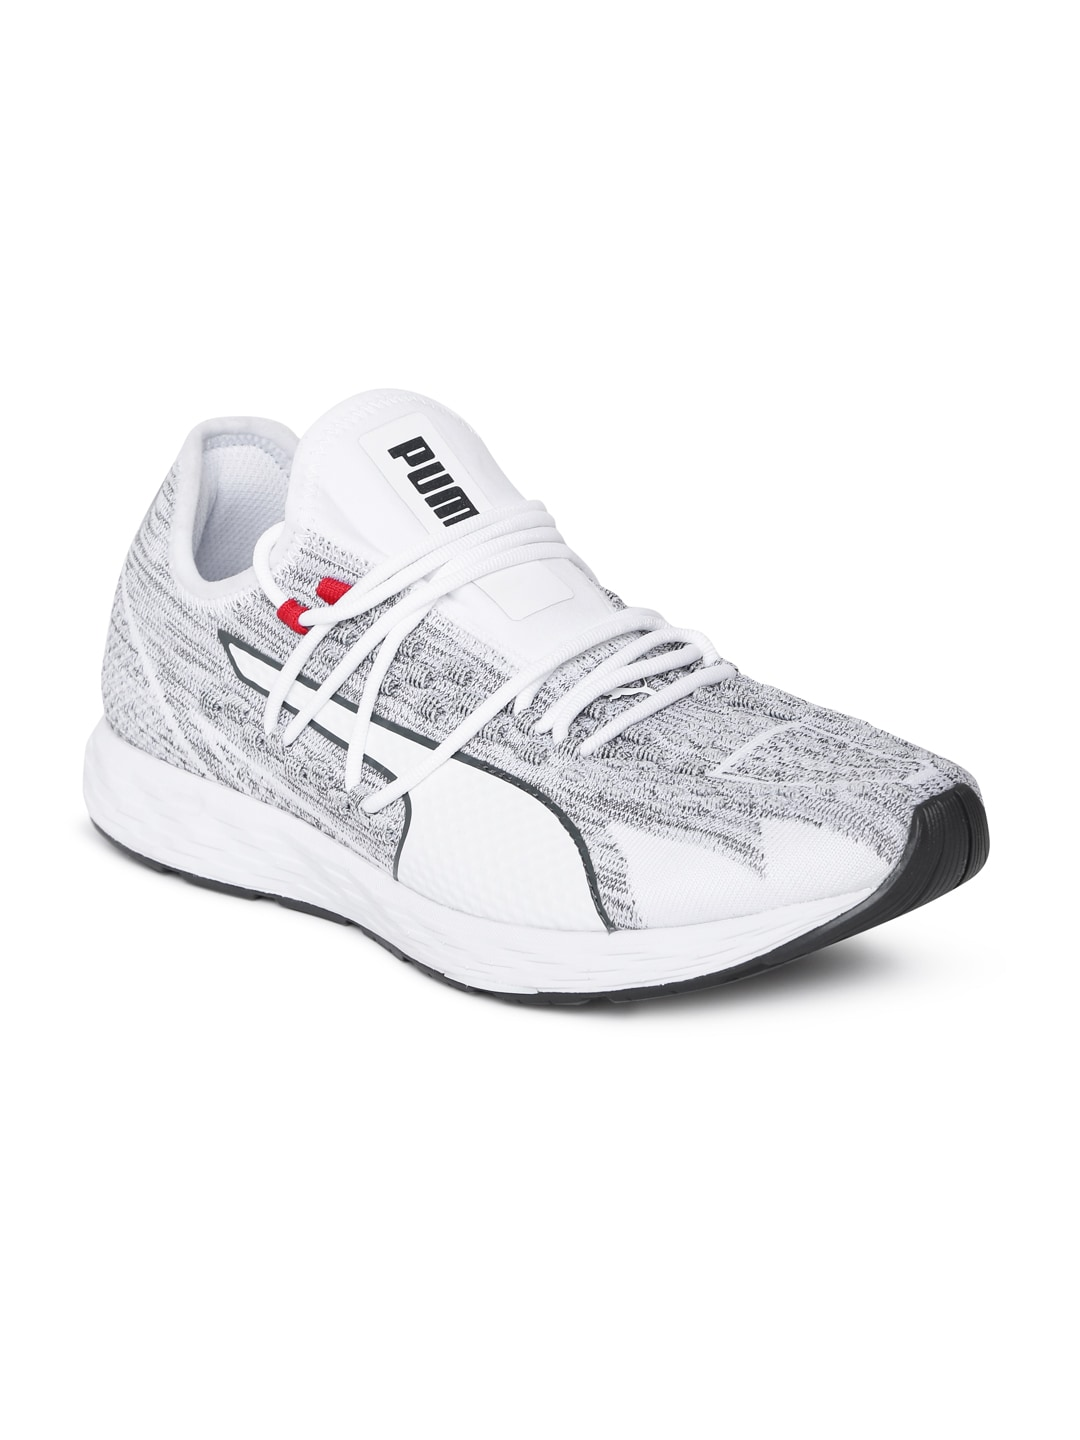 8b02db53f825 Sports Shoes for Men - Buy Men Sports Shoes Online in India - Myntra